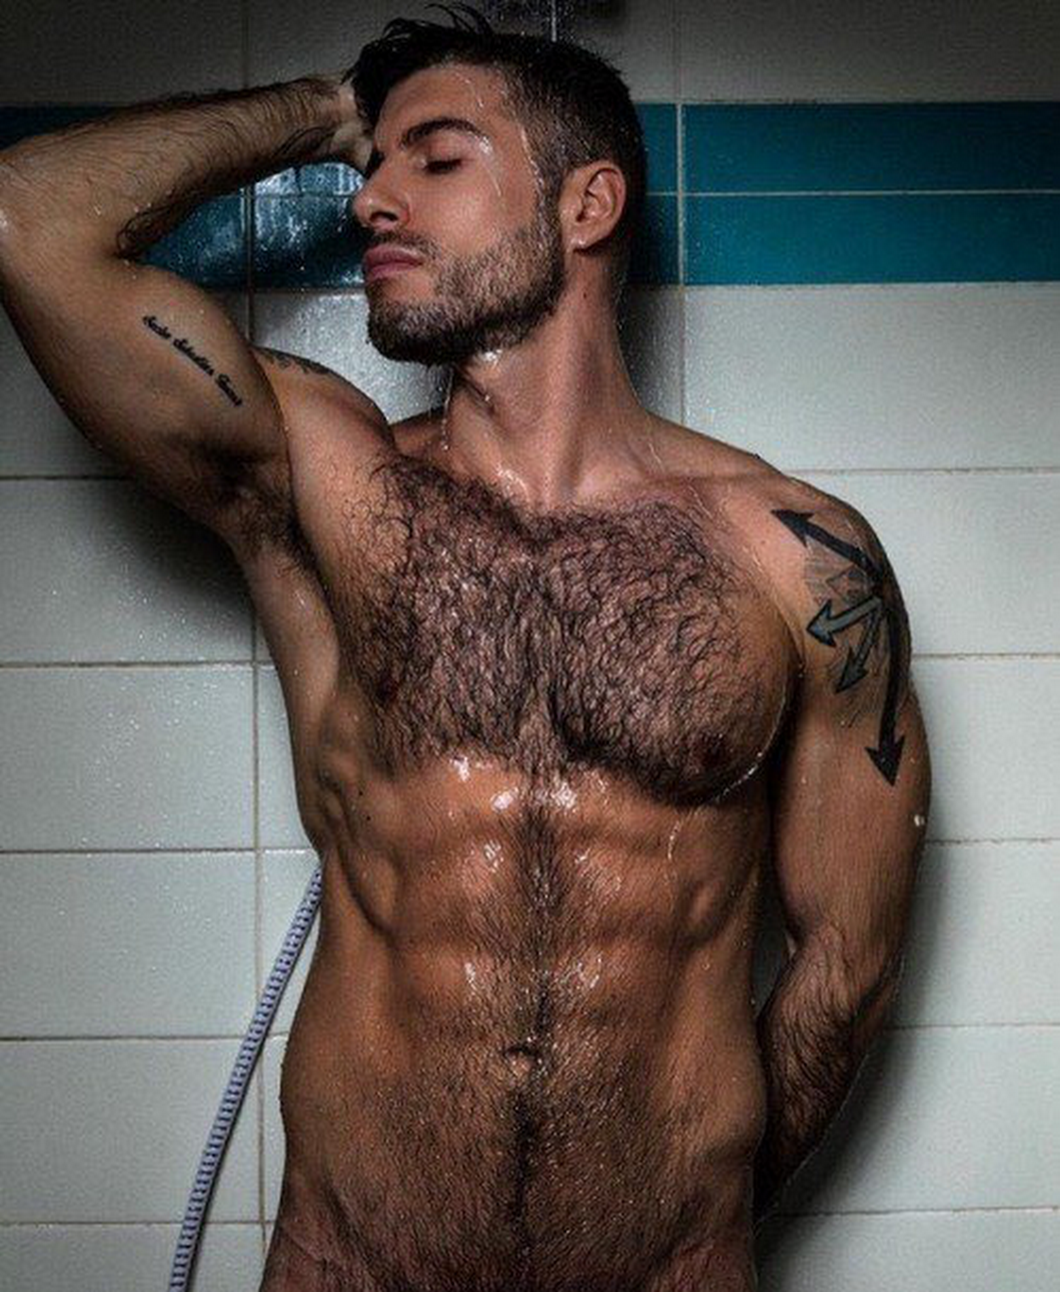 Pin On Shower Time